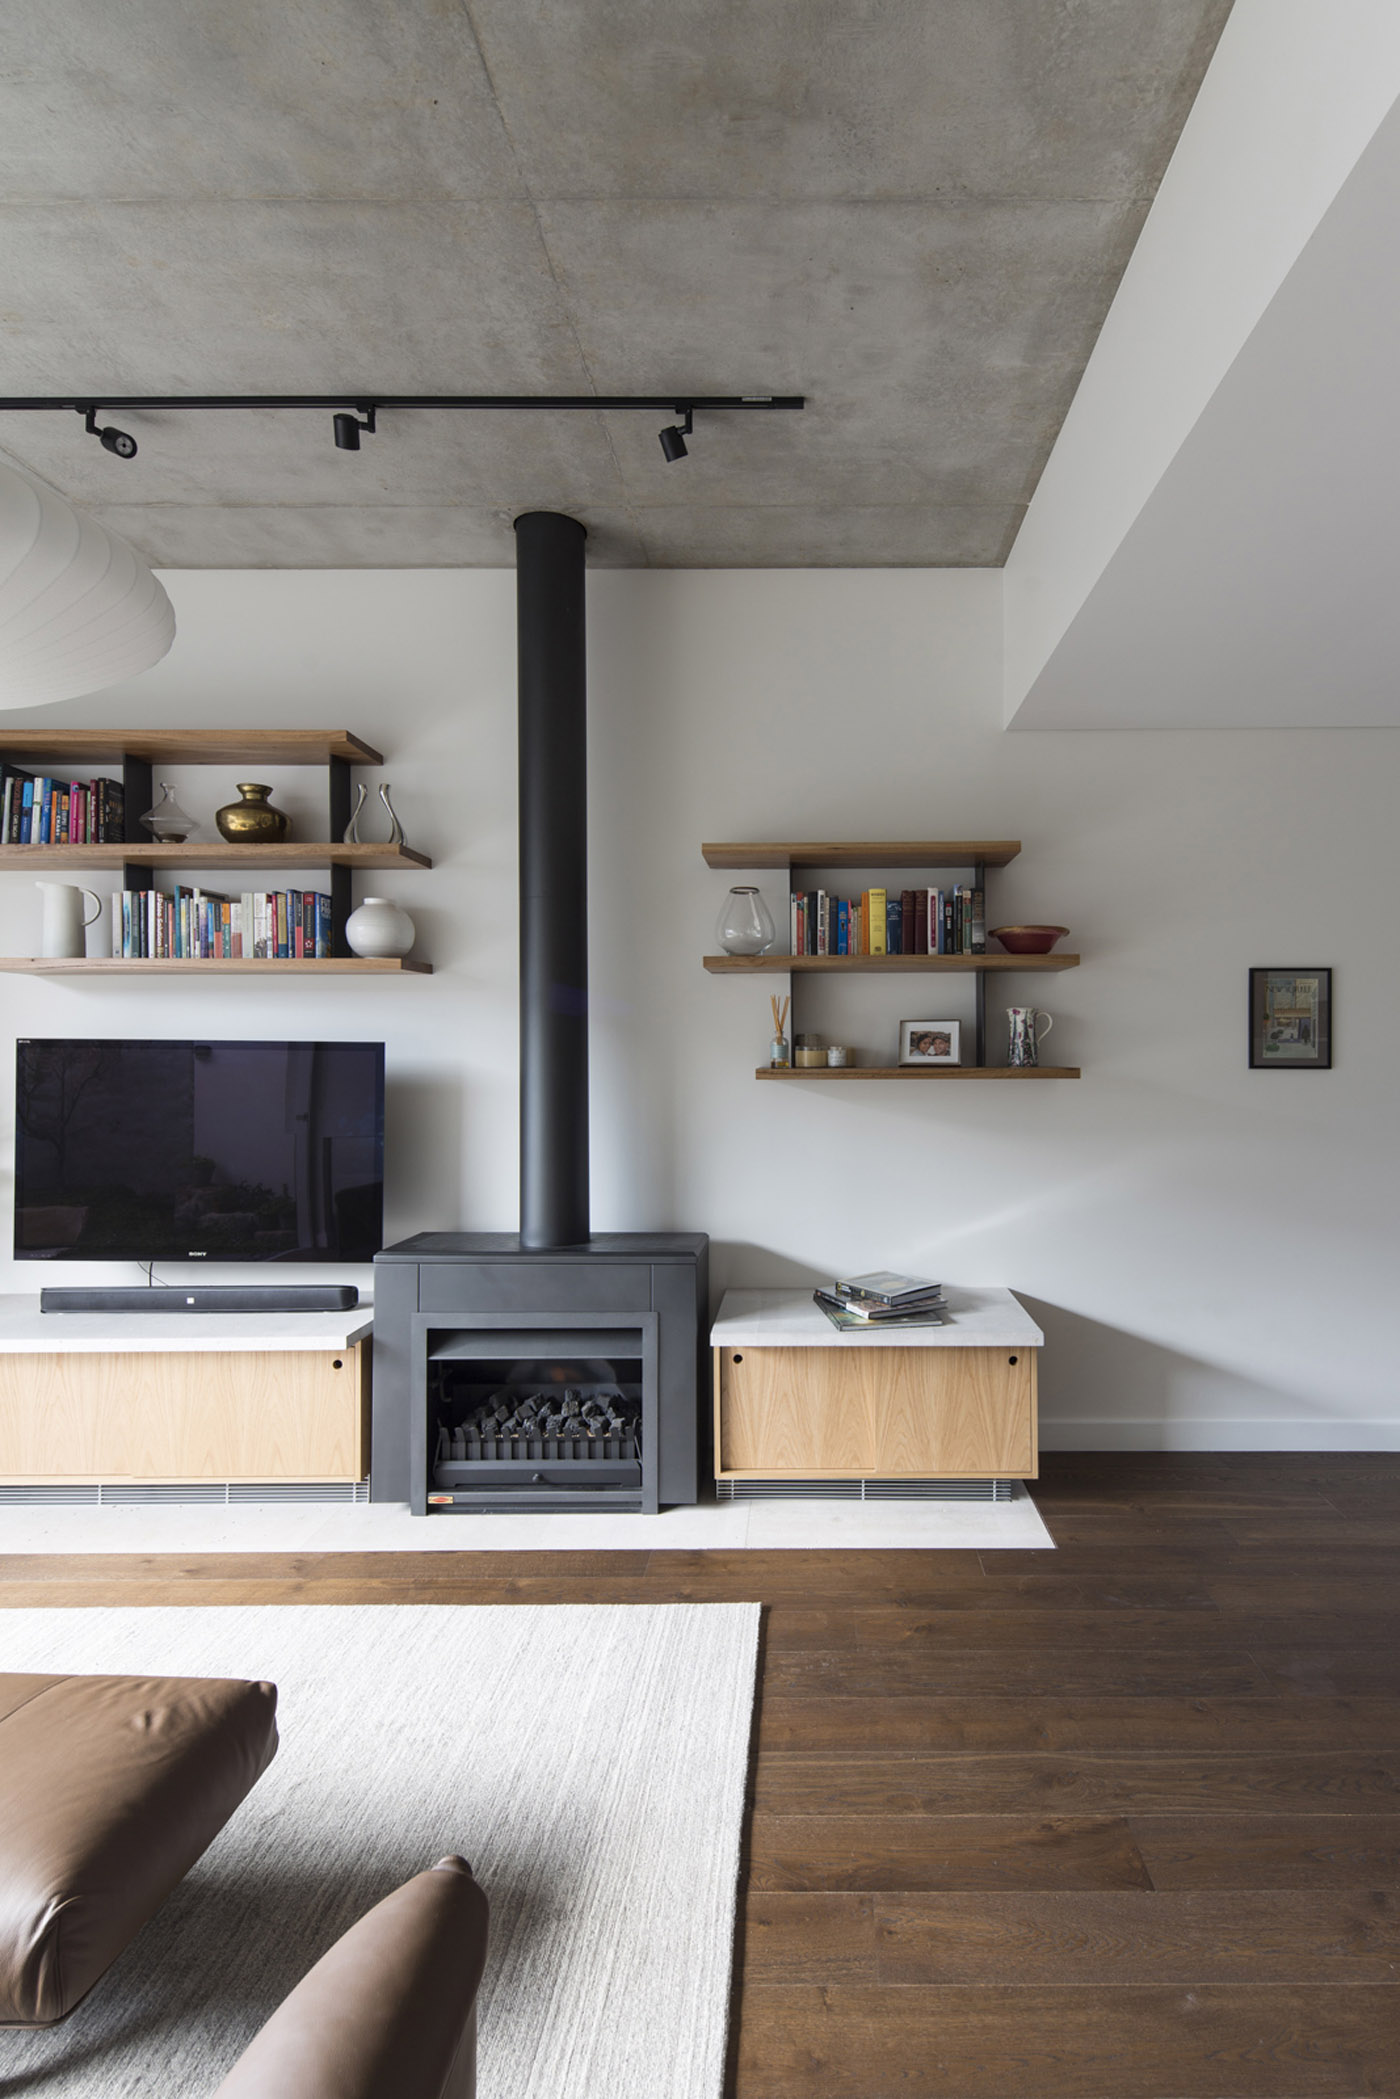 Gandha Kariappa Terrace by Sydney residential architects Sam Crawford Architects. View to living room featuring black fireplace and custom designed joinery